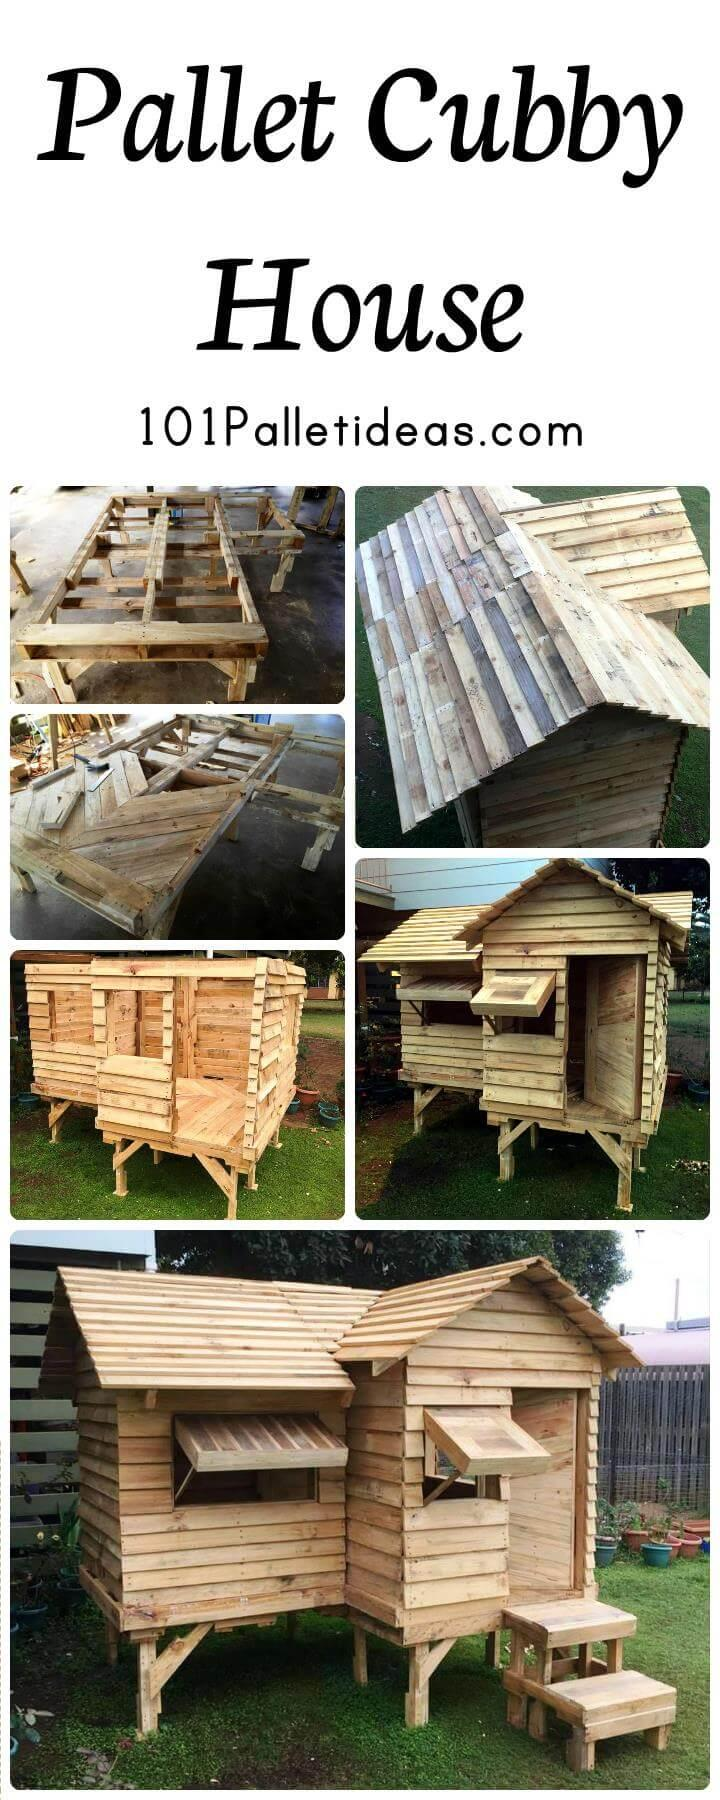 Pallet Cubby House or Pallet Playhouse